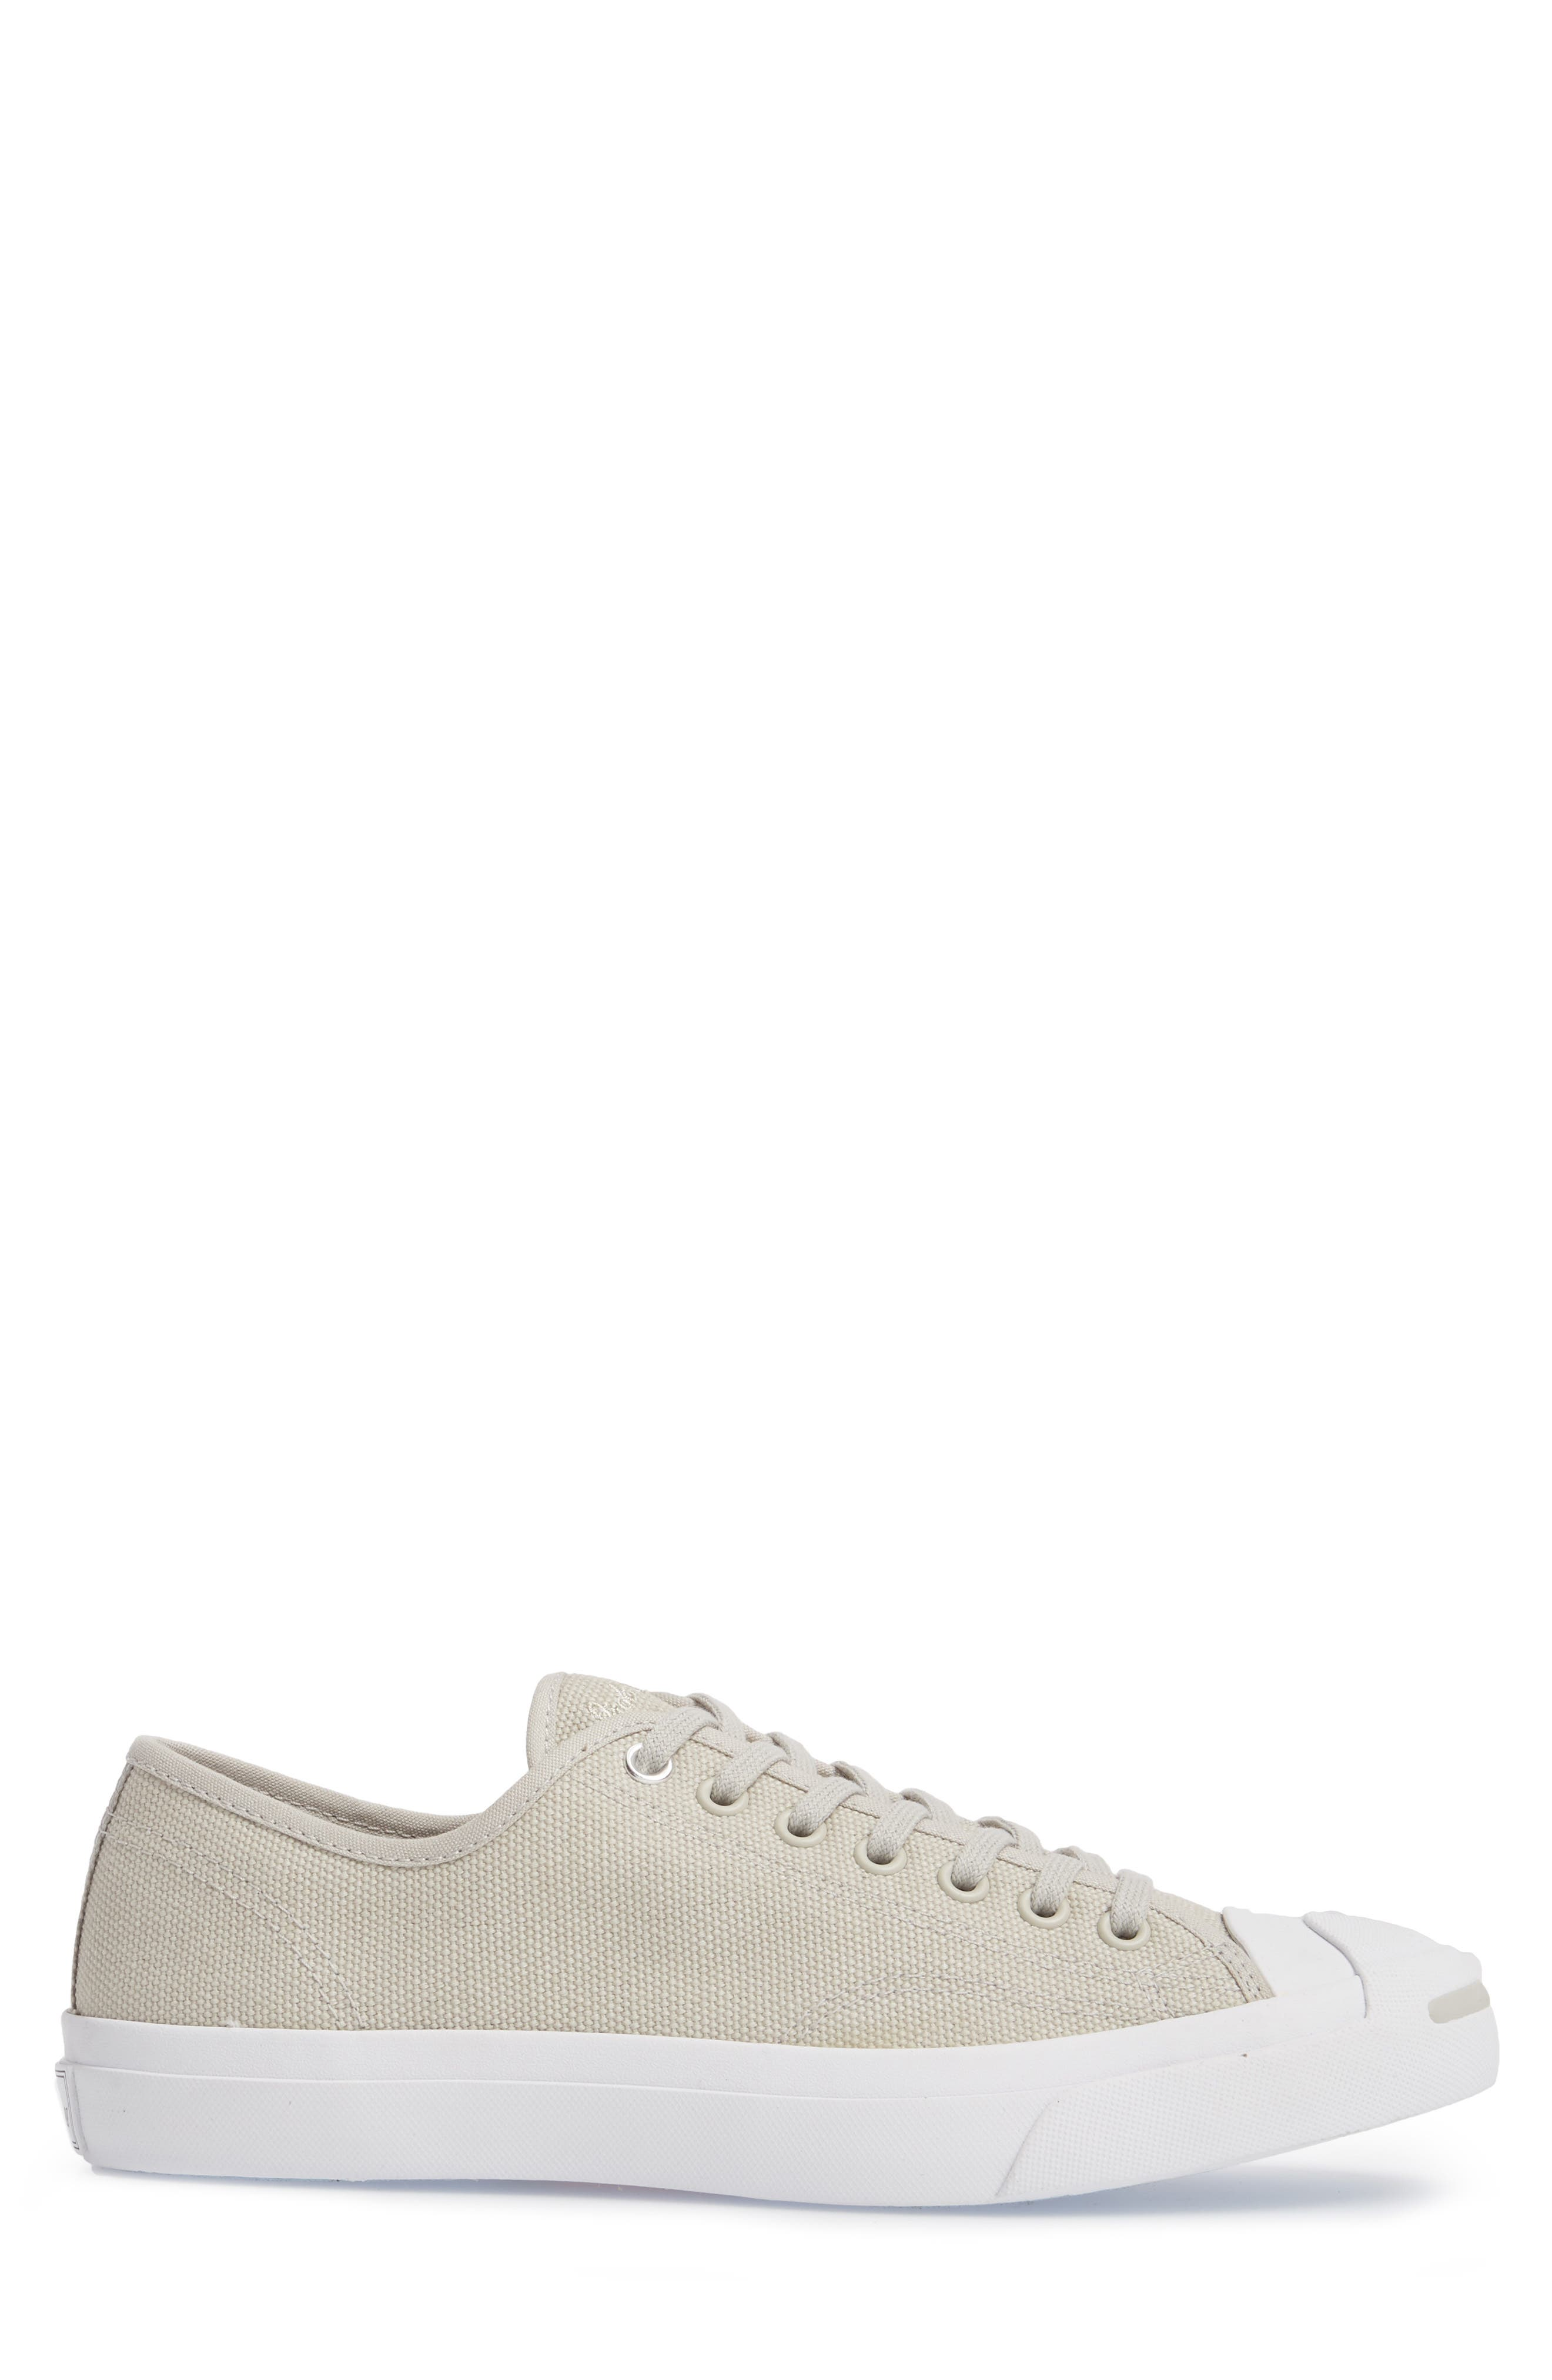 Jack Purcell Sneaker,                             Alternate thumbnail 3, color,                             Pale Grey Canvas